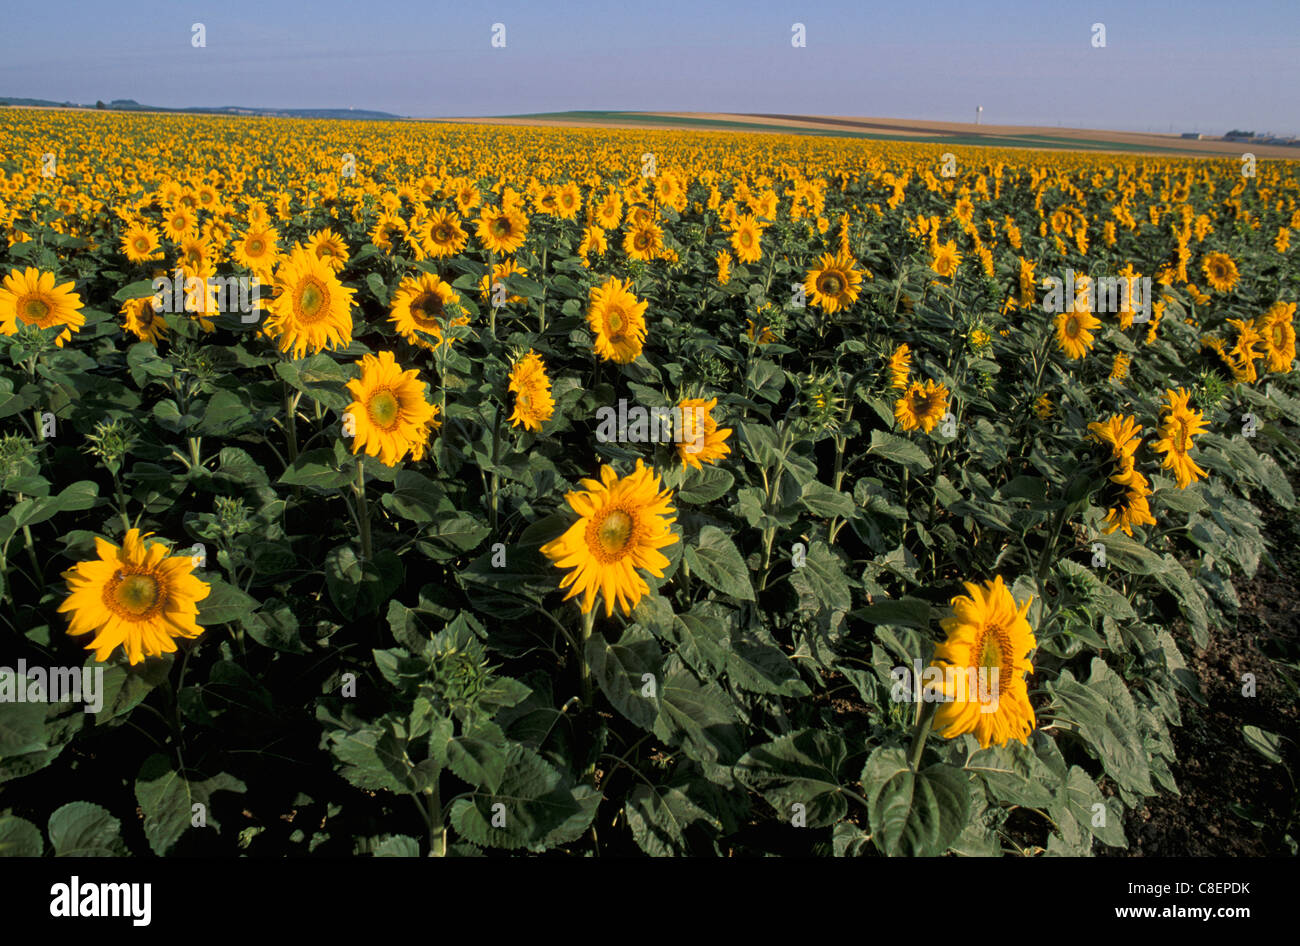 Sunflower, fields, near Reims, Champagne, France, Europe, yellow - Stock Image